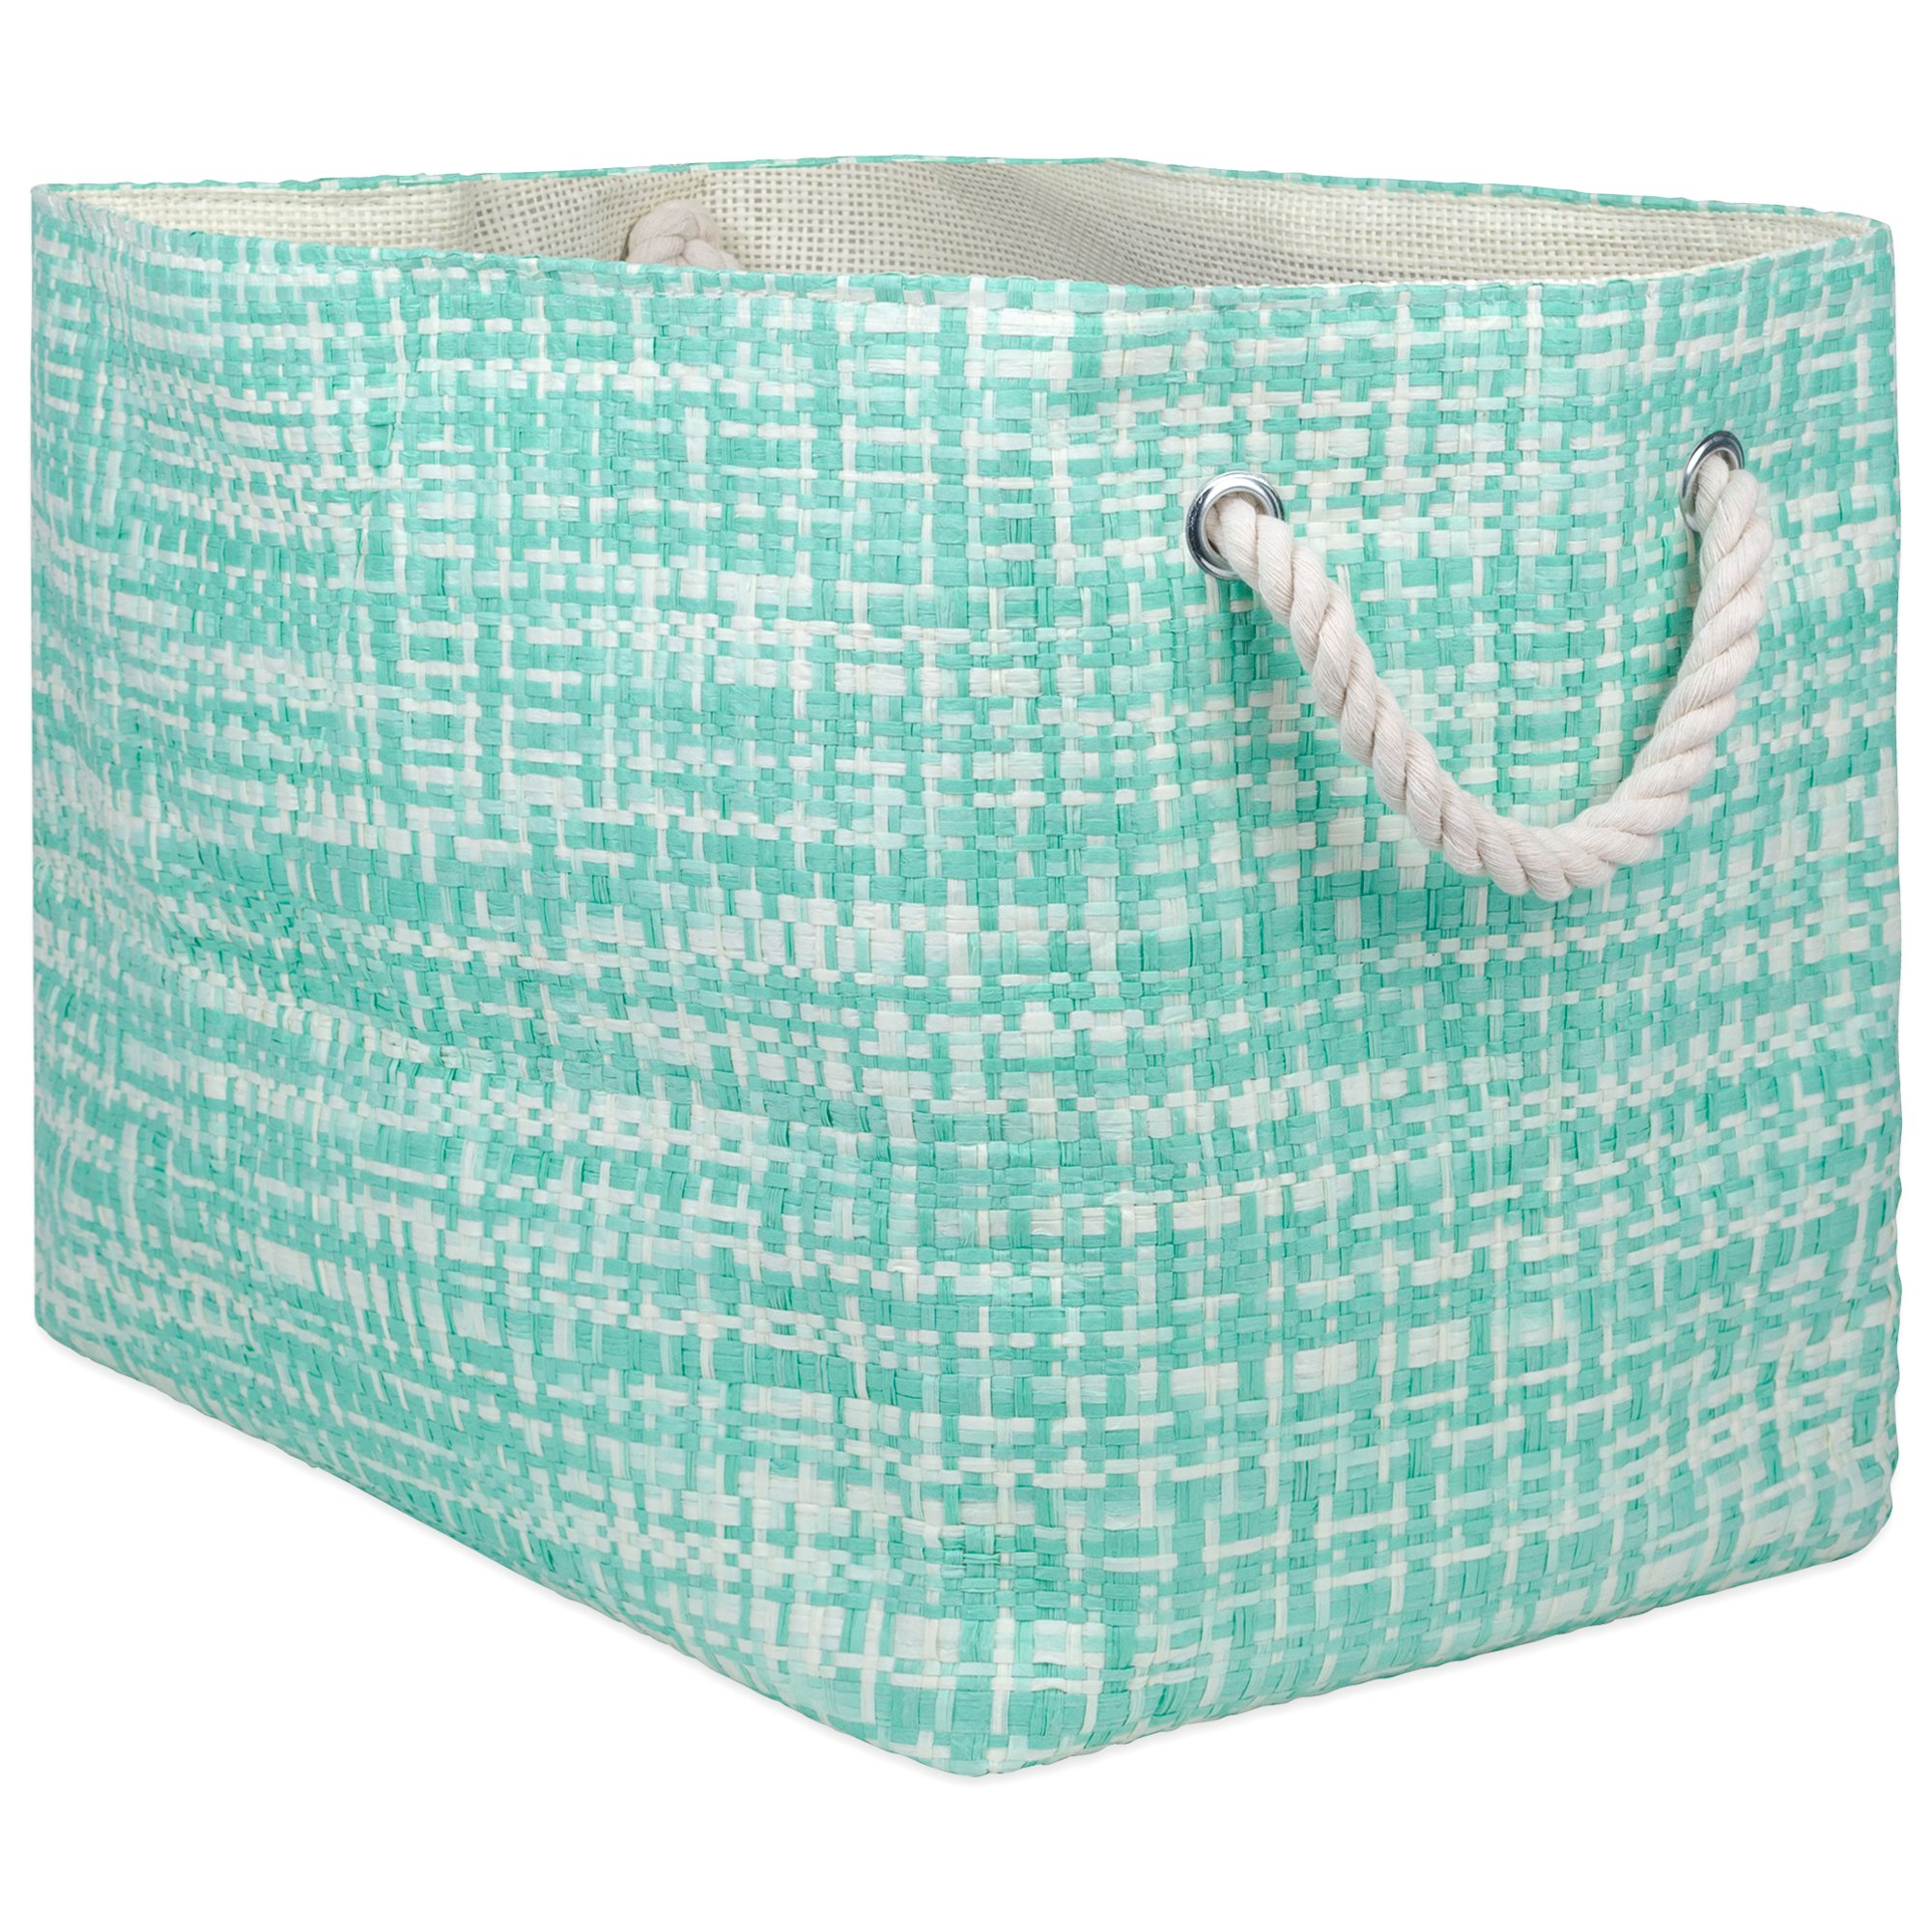 "DII Oversize Woven Paper Storage Basket or Bin, Collapsible & Convenient Home Organization Solution for Office, Bedroom, Closet, Toys, Laundry (Large - 17x12x12""), Aqua Tweed"